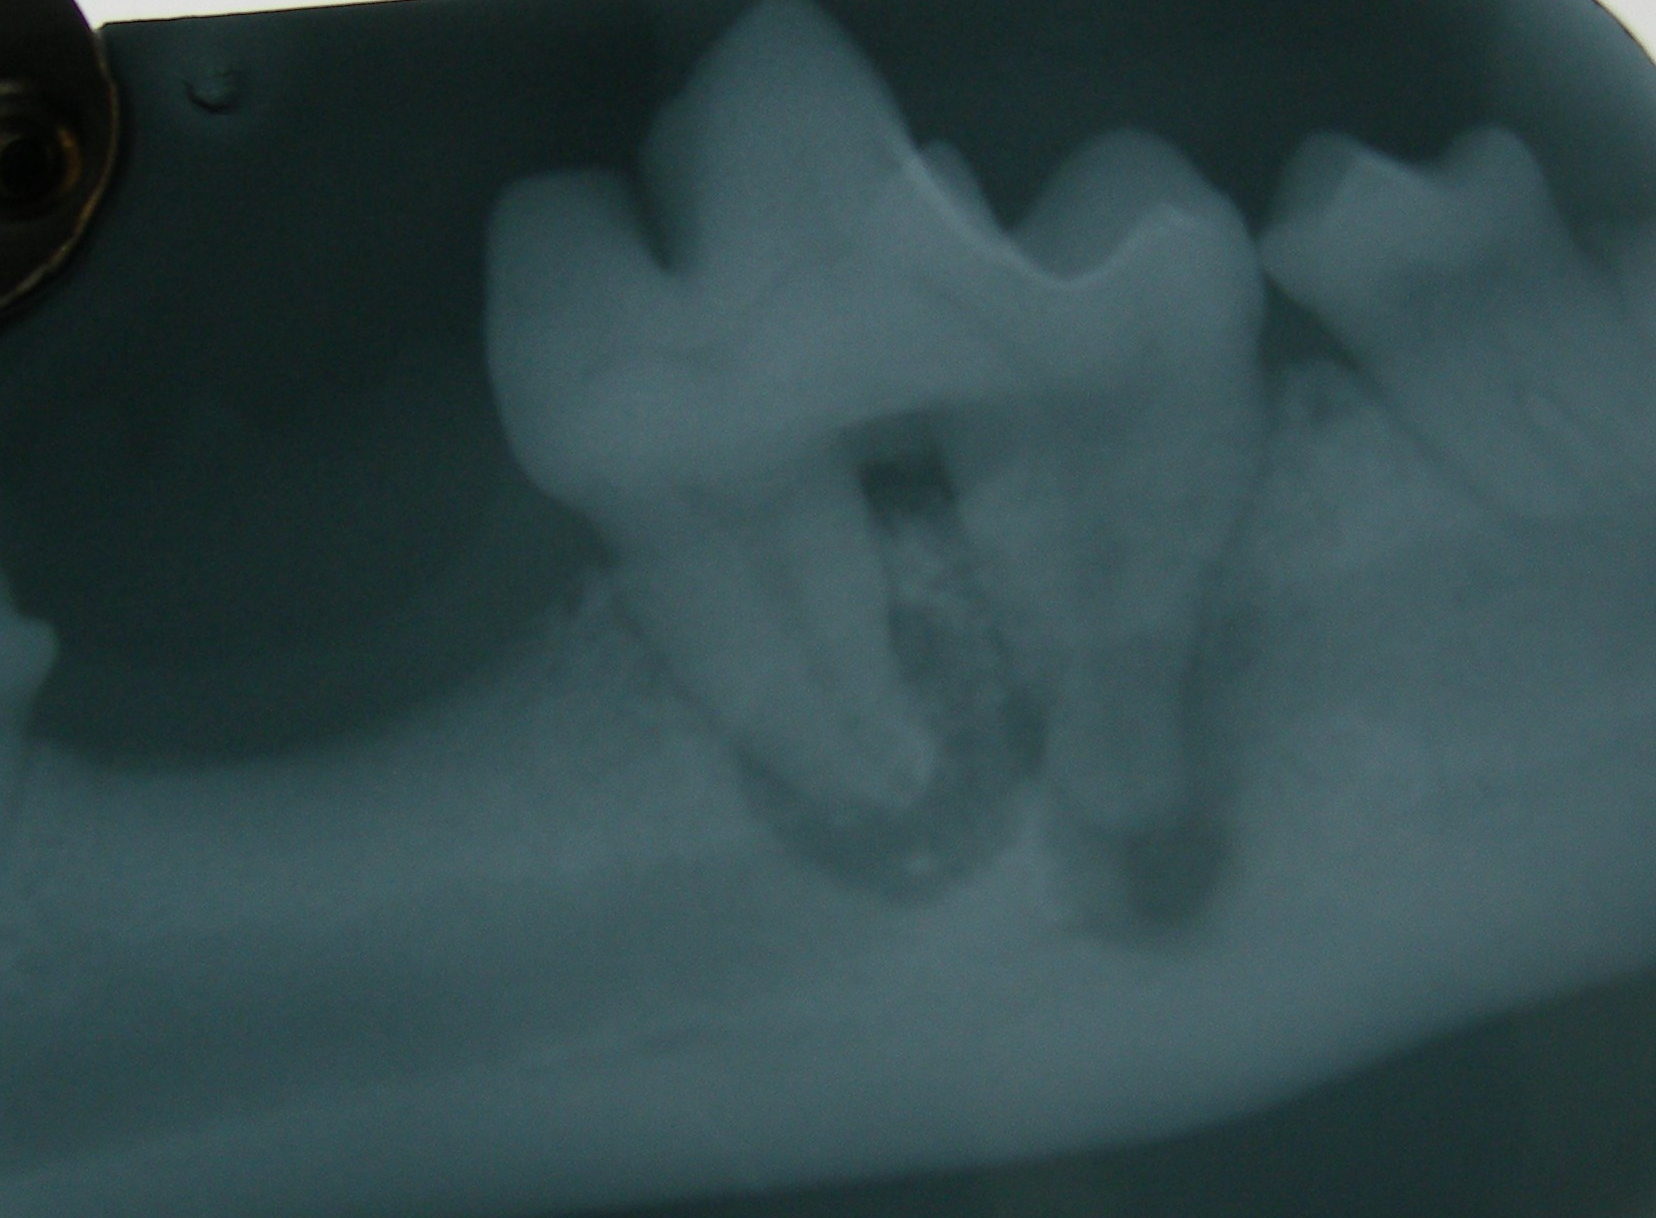 Xray of abcess on molar of lower jaw